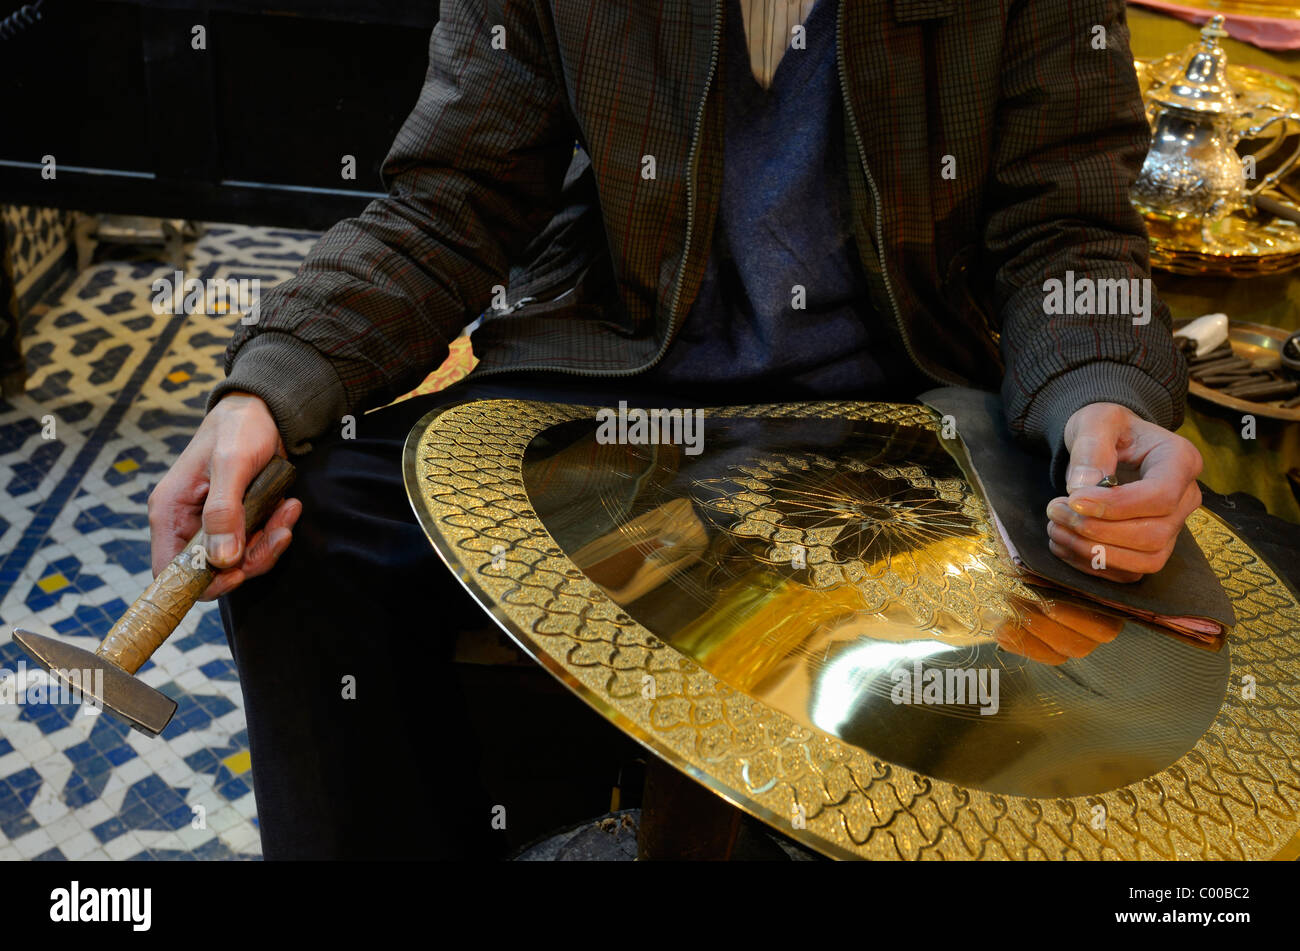 Worker with hammer and chisel showing work in progress engraving brass plate in Fes el Bali Fez Morocco - Stock Image